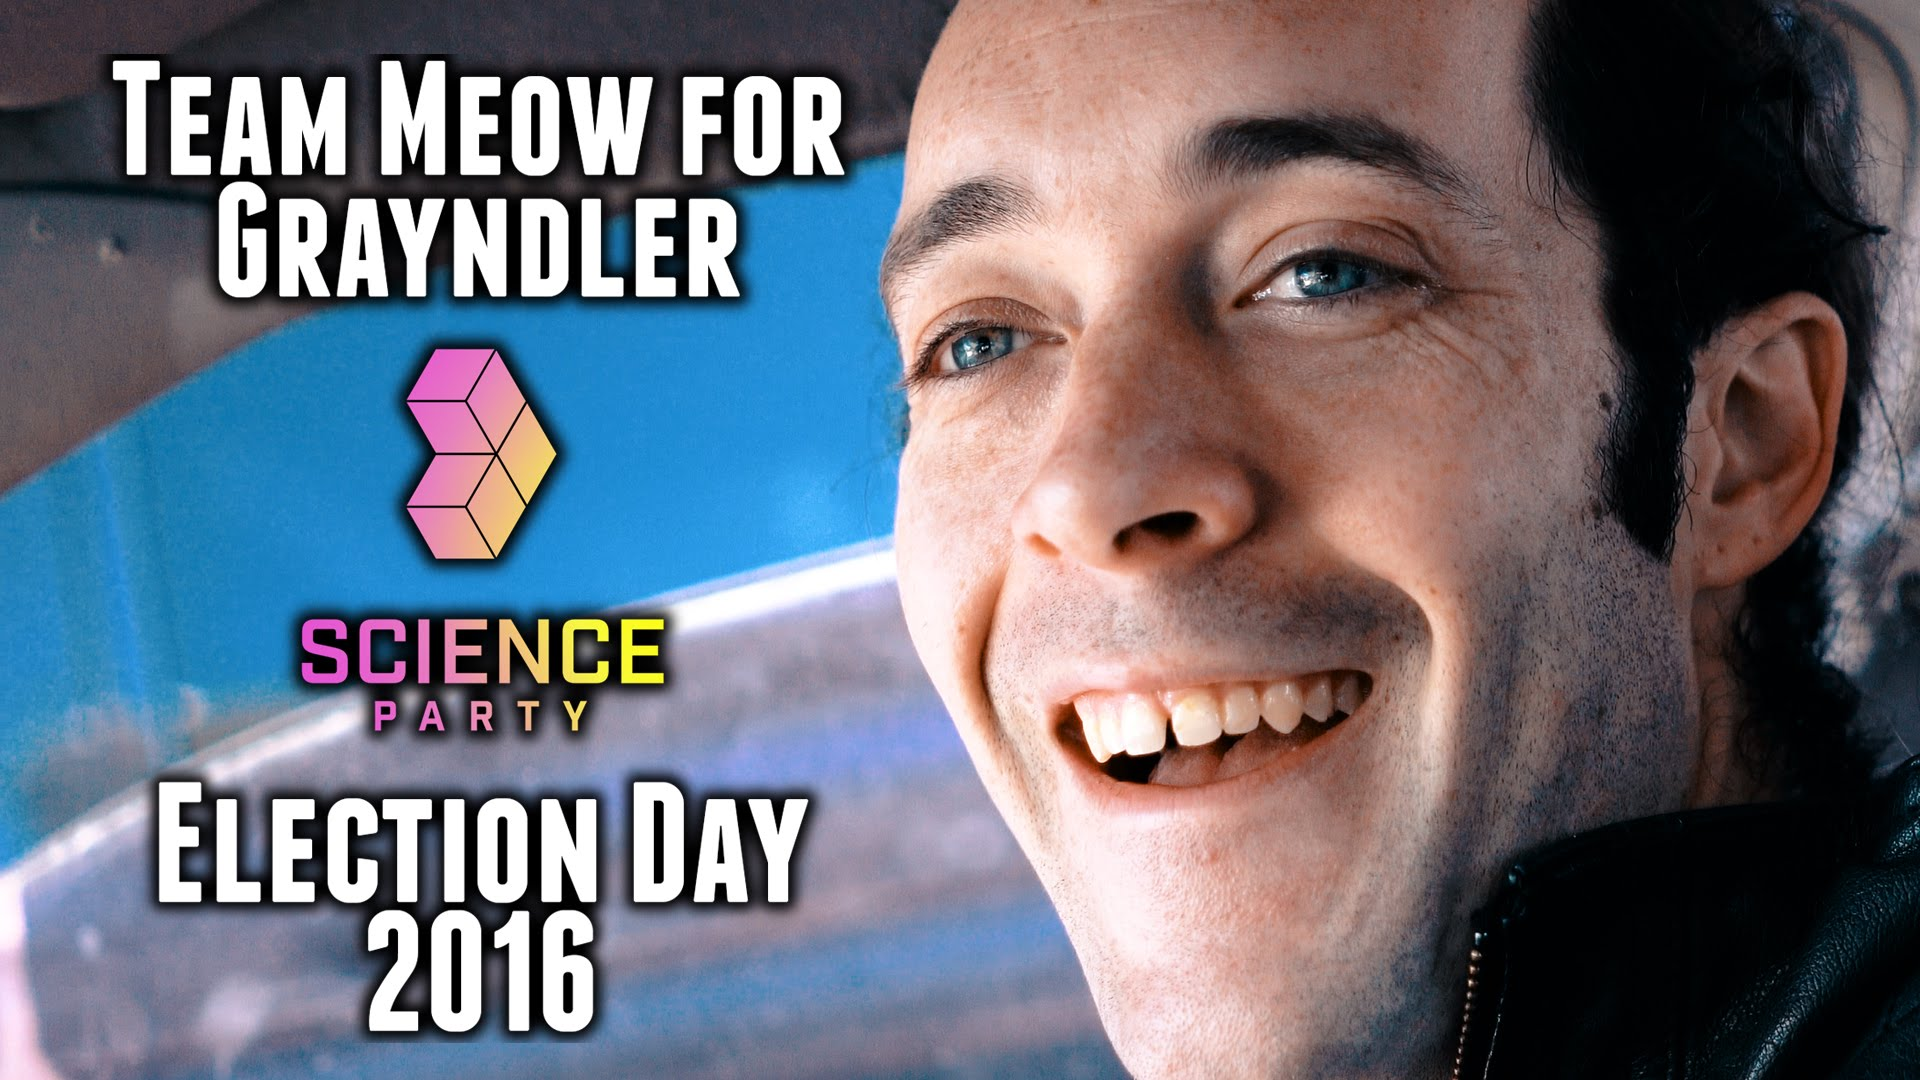 Team-Meow-for-Grayndler-Election-Day-2016